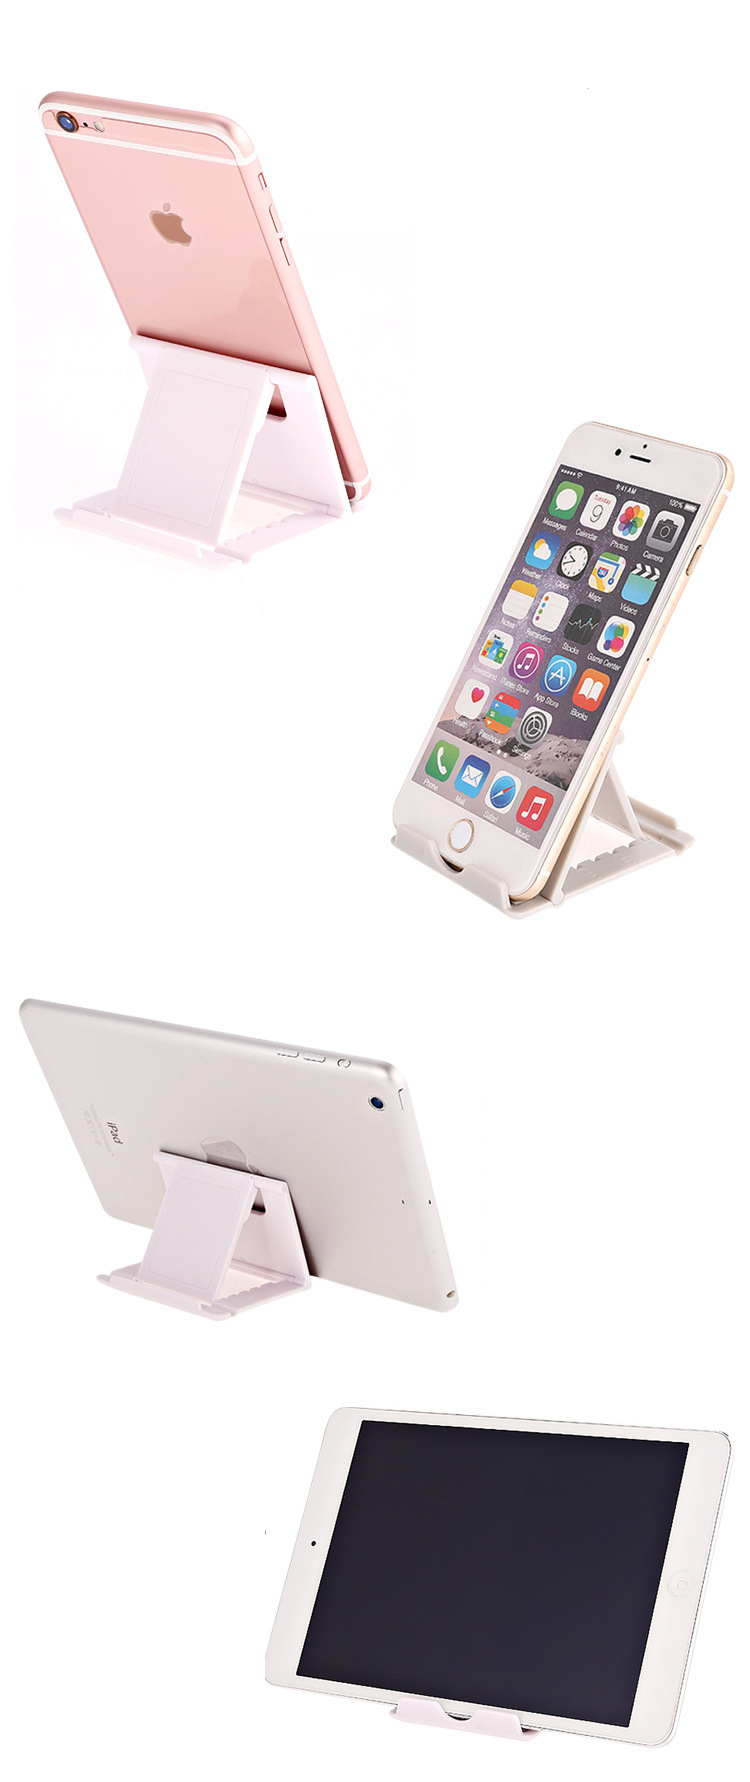 HTB1UMyqHb9YBuNjy0Fgq6AxcXXaY - Universal Mobile Phone Holder Easy To Charge Support